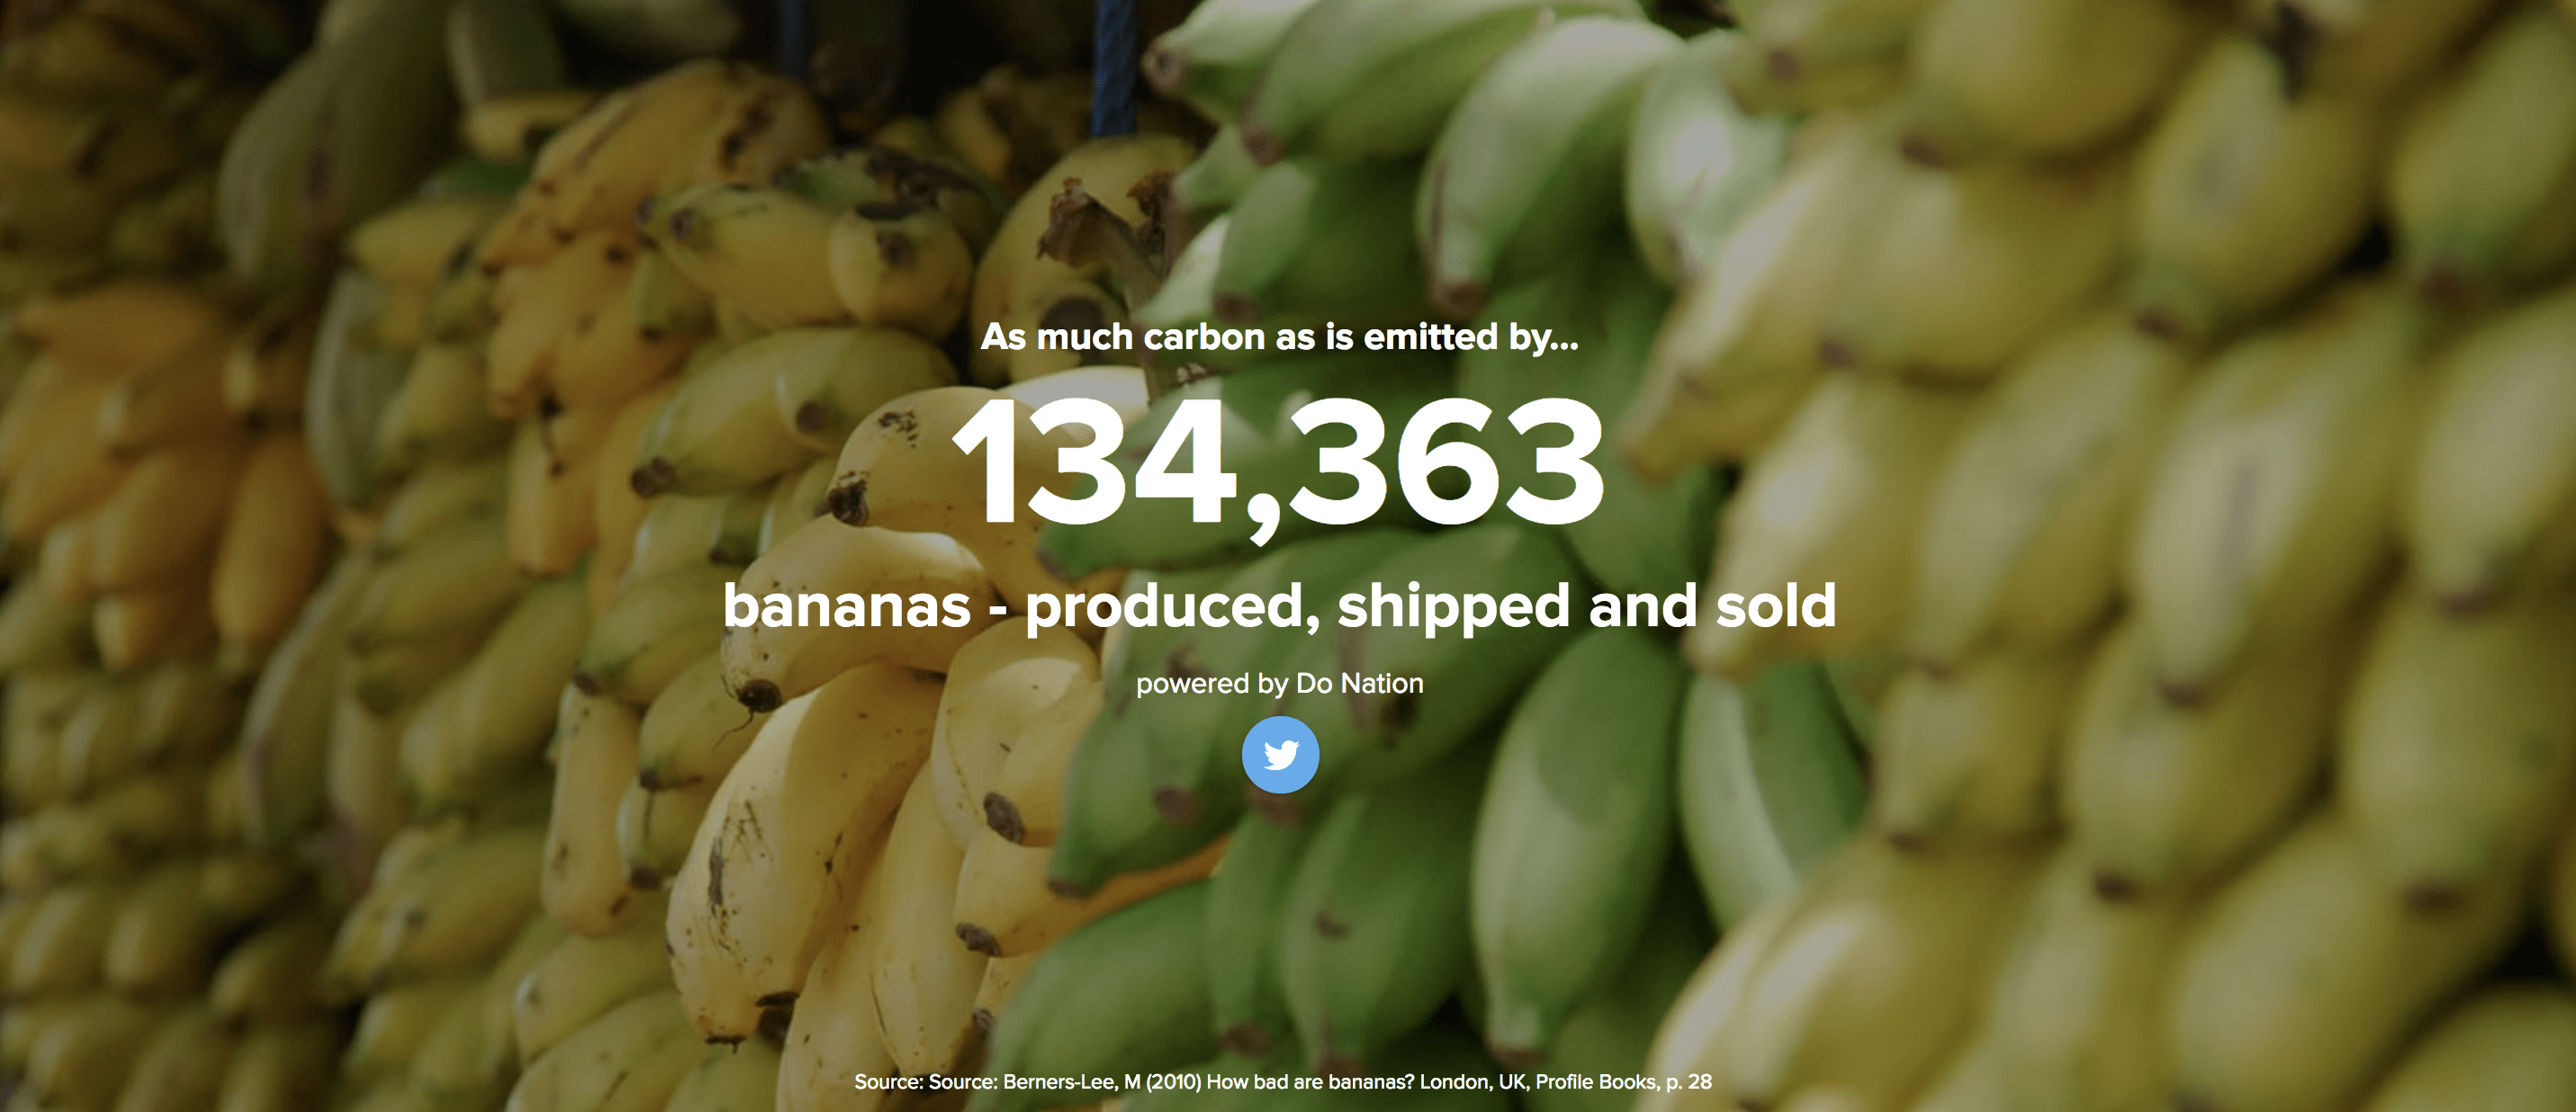 Banana image. We saved as much carbon as is emitted by 134,363 bananas - produced, shipped and sold.